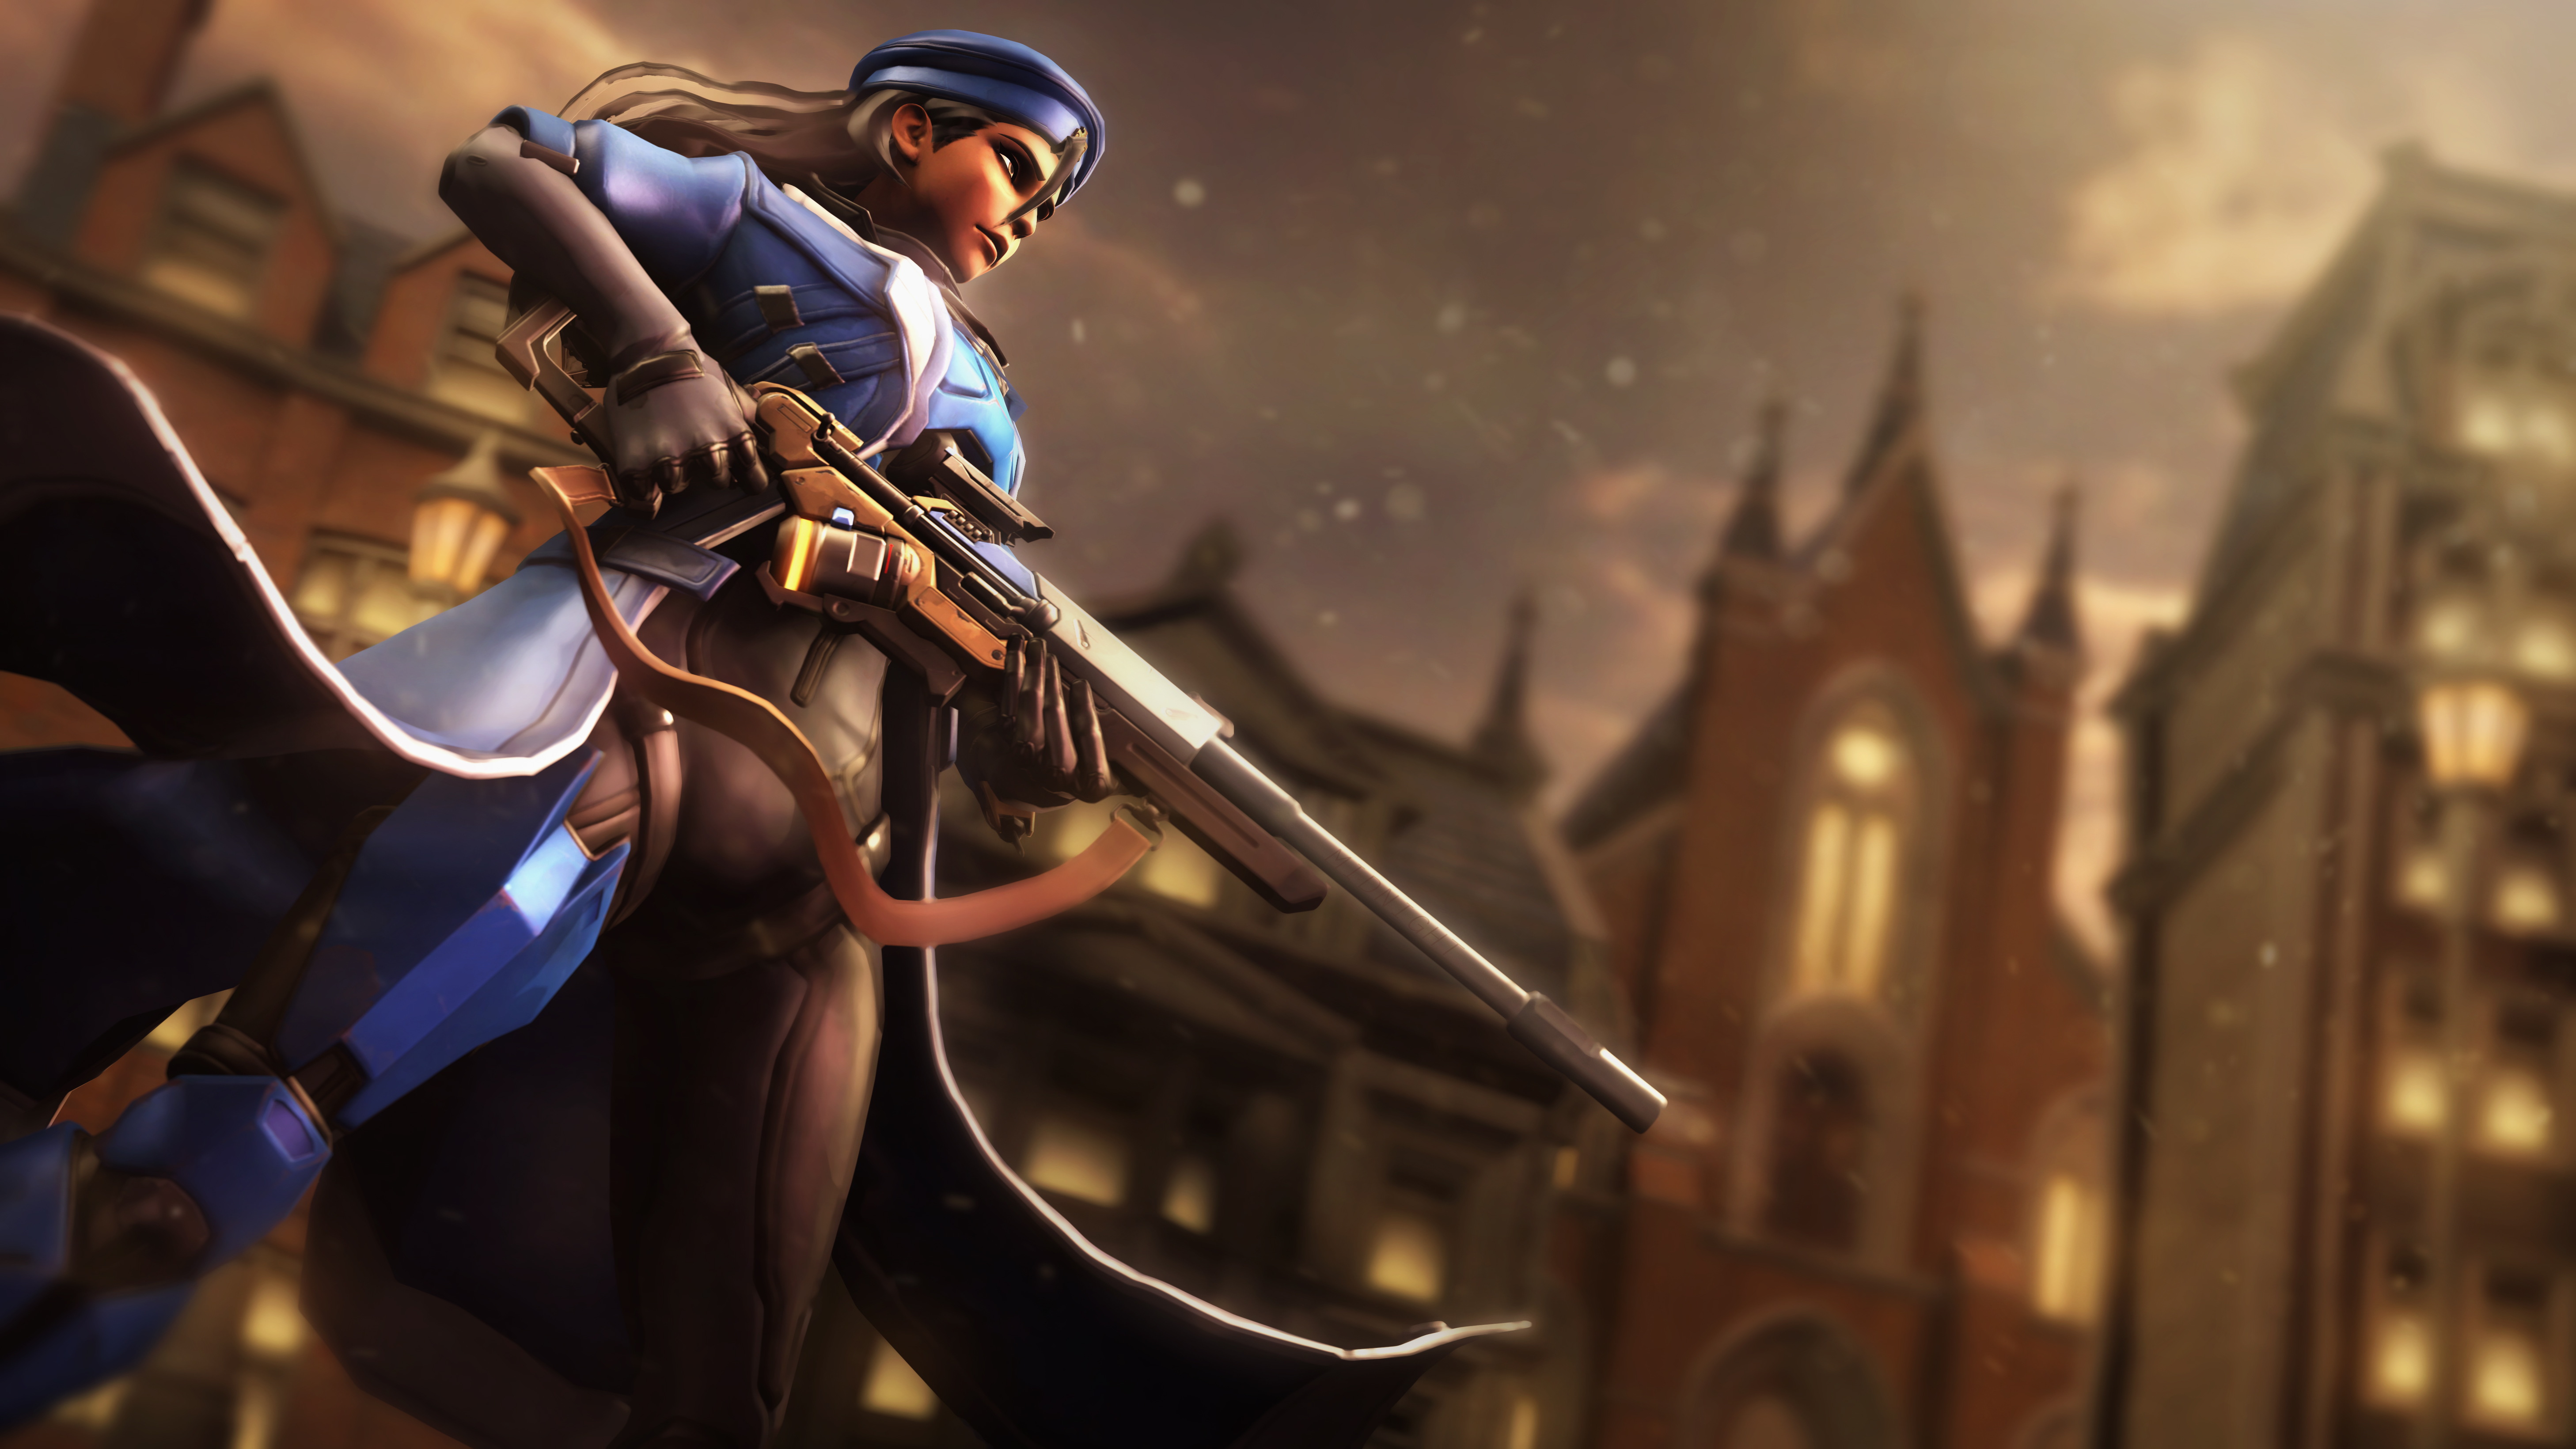 Ana Overwatch 5k Hd Games 4k Wallpapers Images